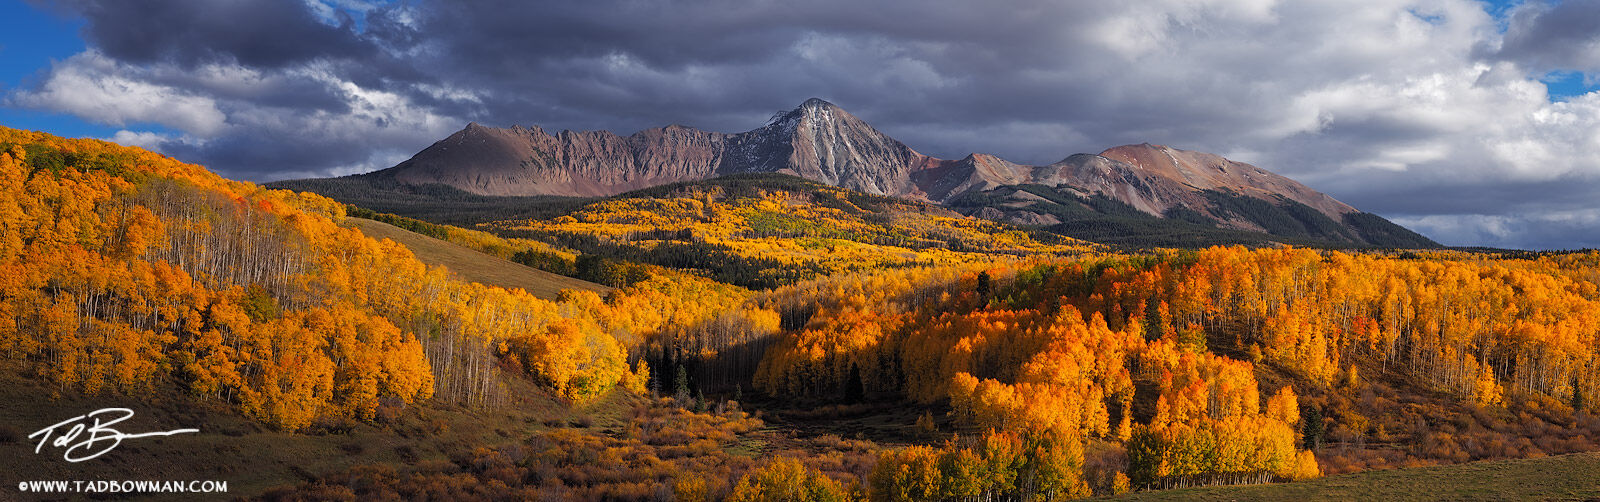 Colorado, Colorado Mountain Photos,Panorama, Fall Foliage, Fall colors, Autumn, Autumnal, picture, image, photographs, Uncompahgre National Forest,stormy,clouds, gold, yellow, photo